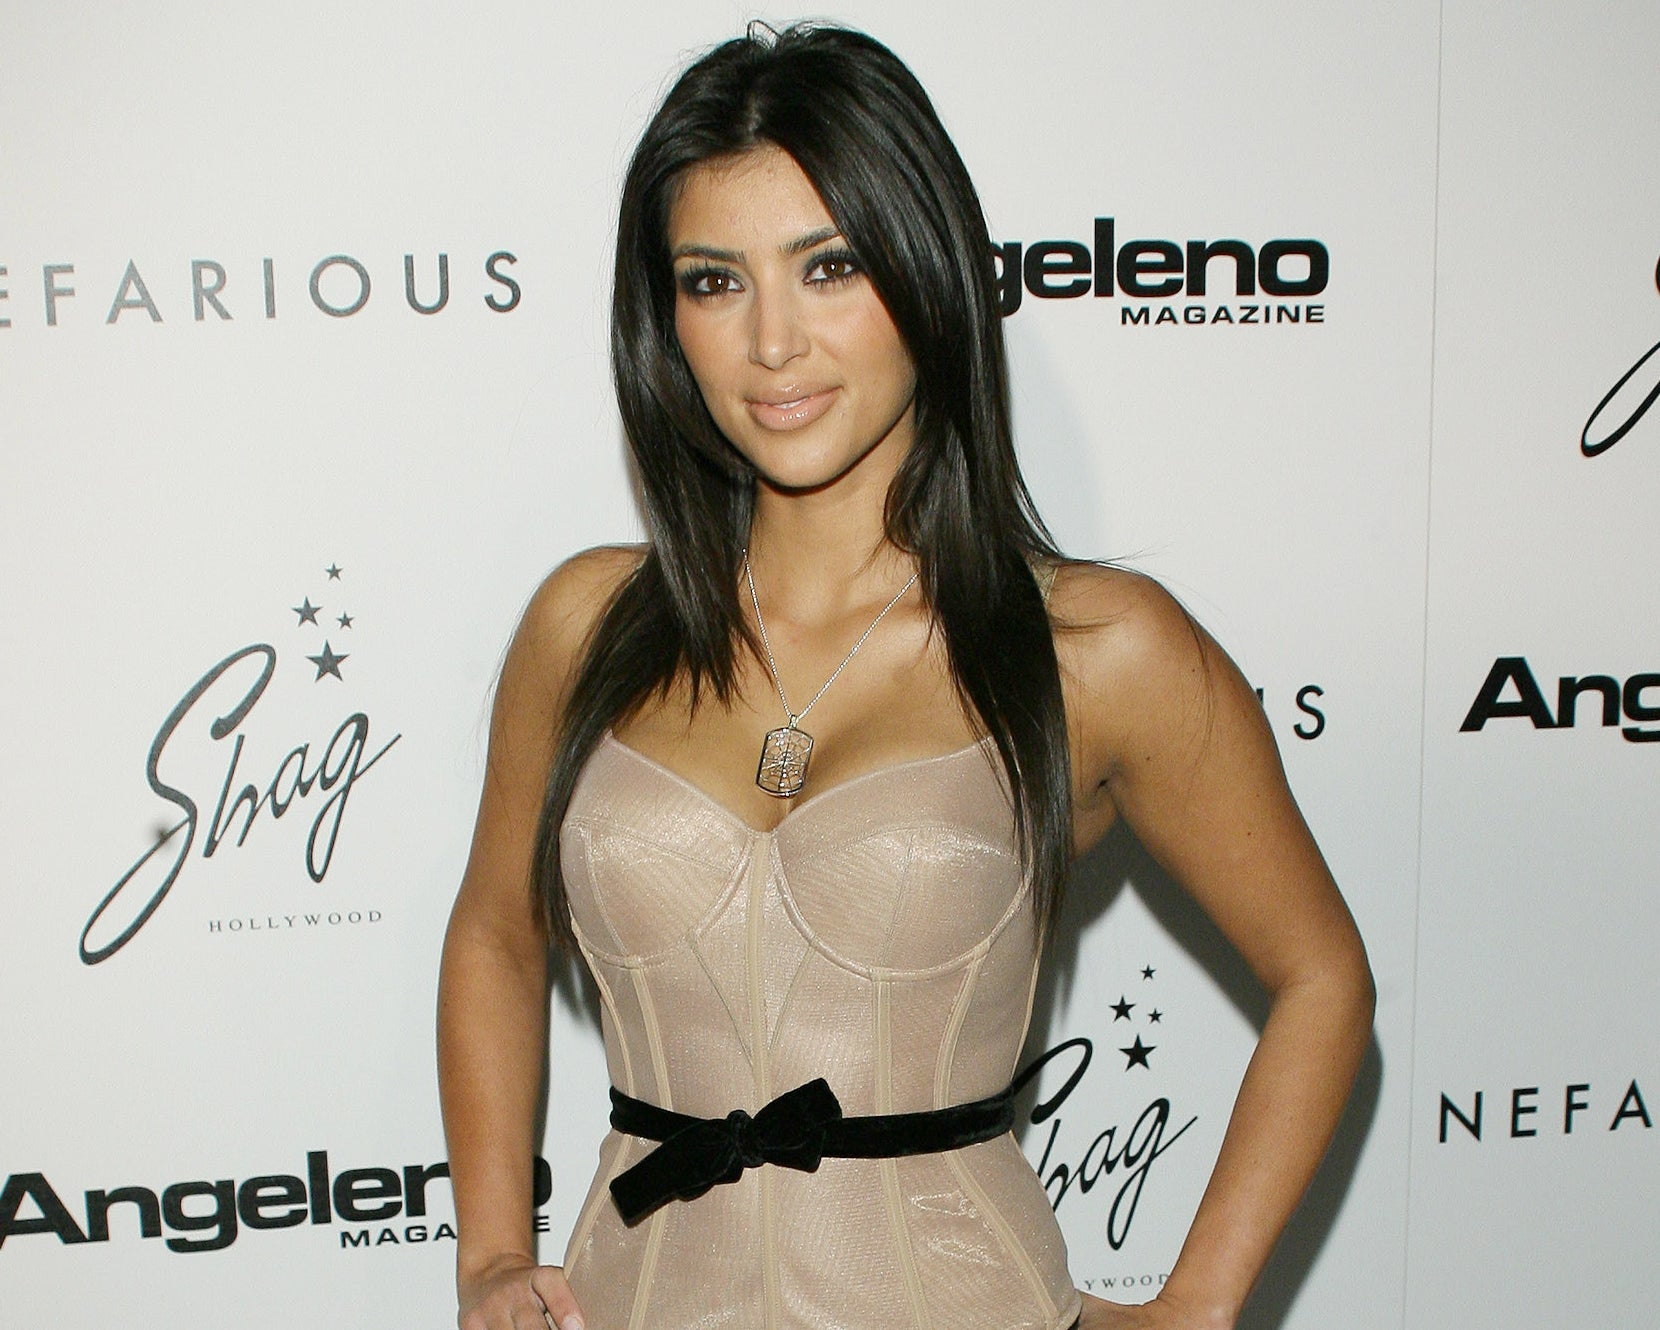 Kim wears a nude bustier top in an old event photo